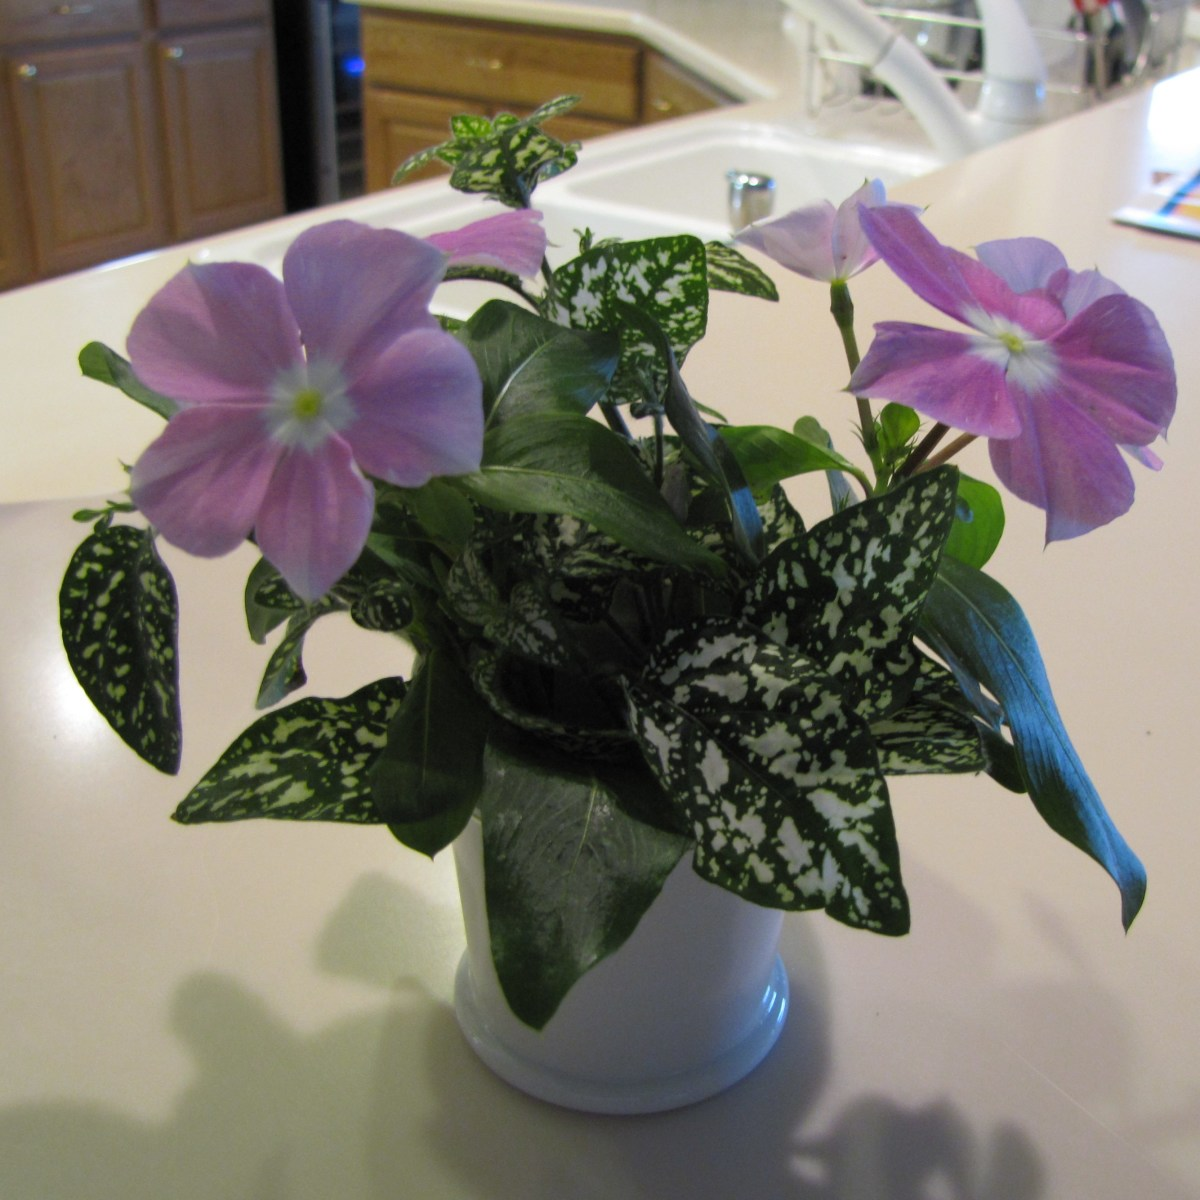 This uses a miniature cream pitcher with multi-colored leaves and several flower.